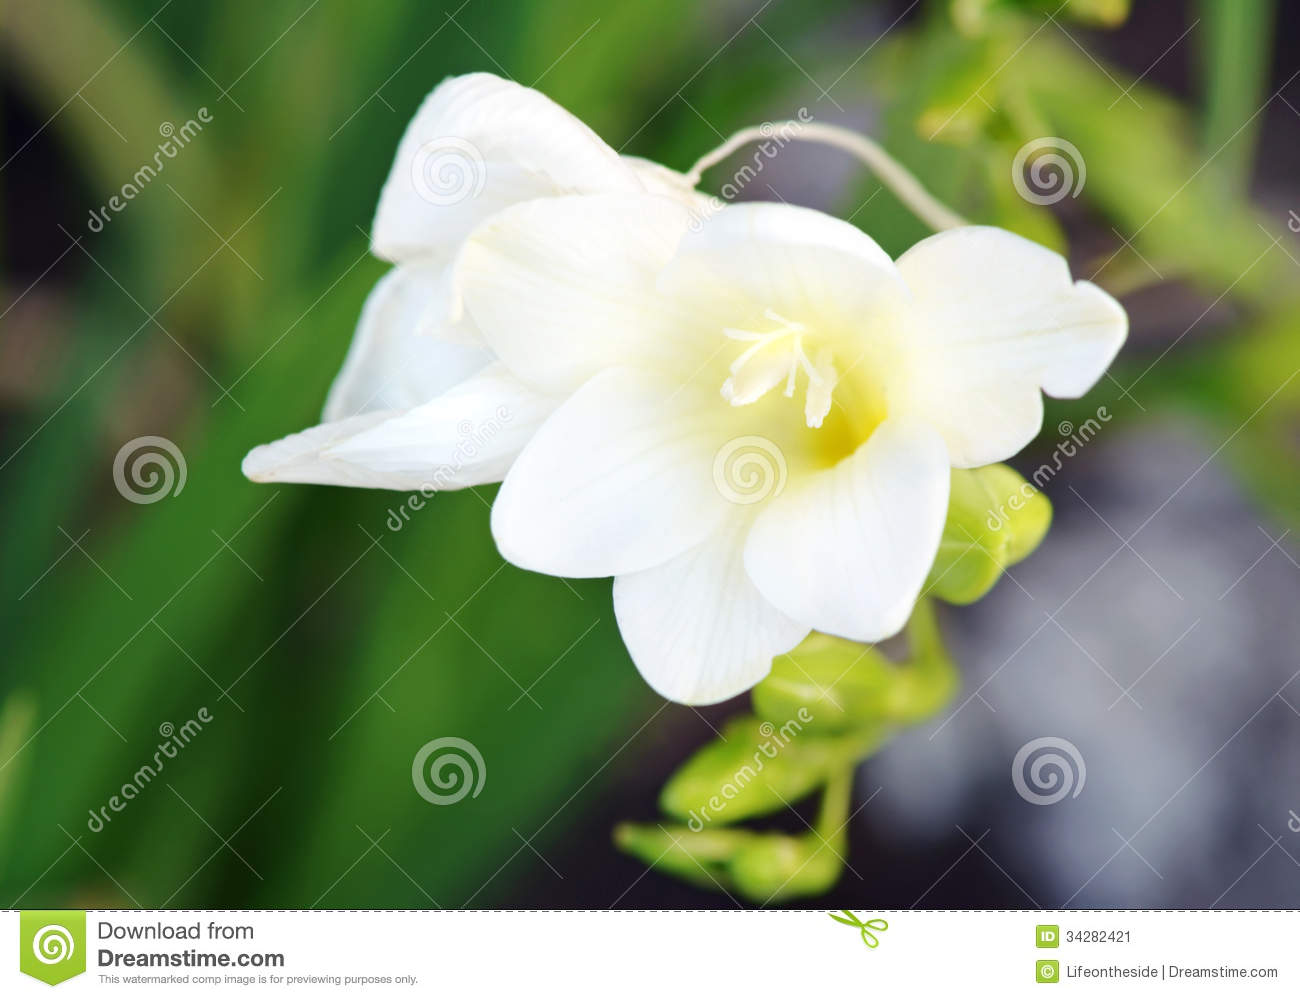 Delicate white fragrant freesia open flower plant stock image delicate white fragrant freesia open flower plant mightylinksfo Images